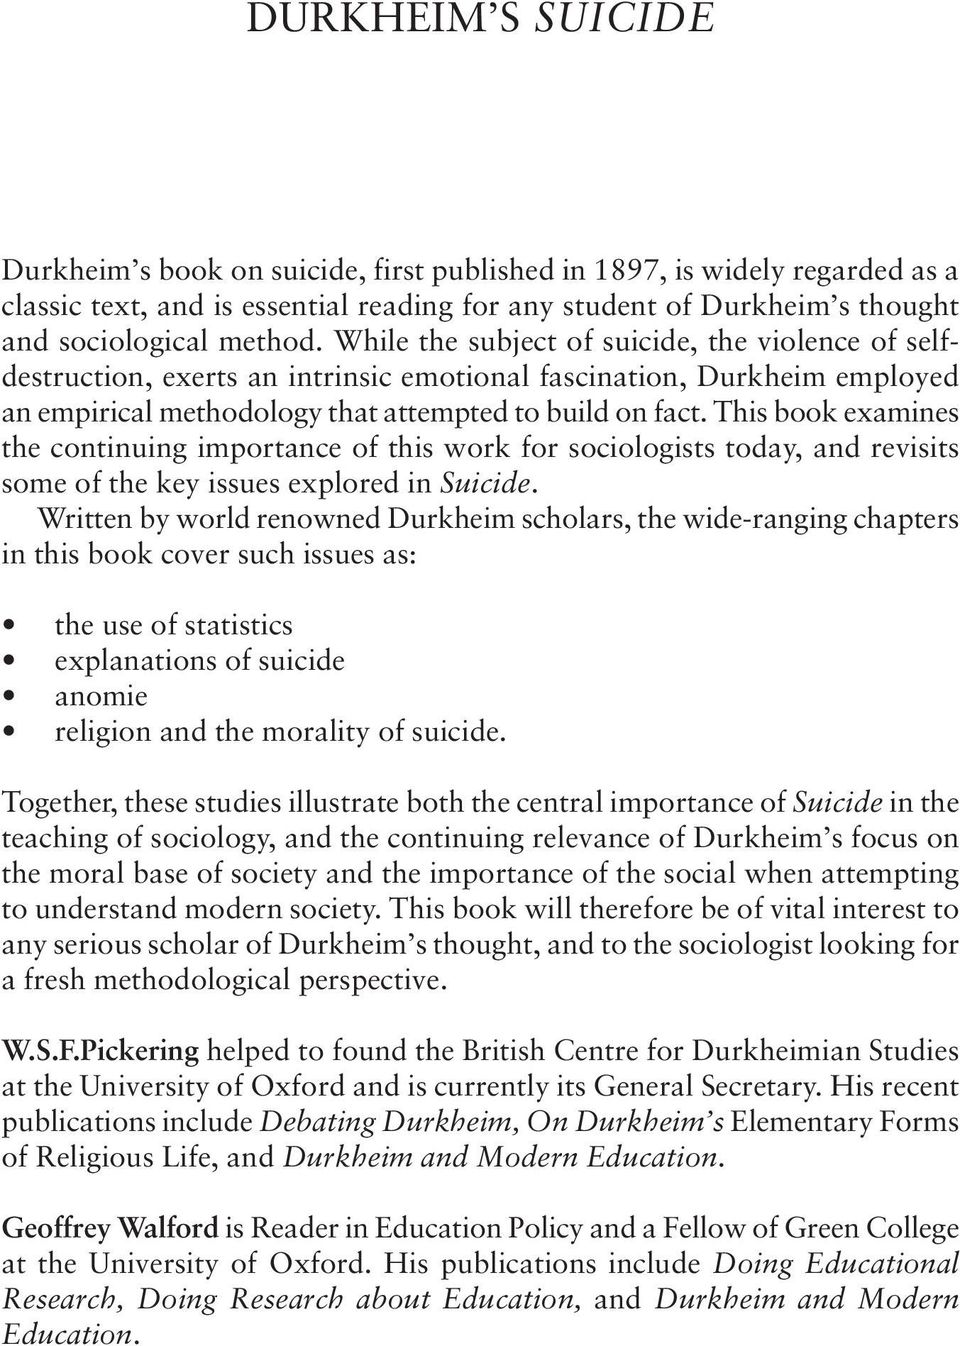 This book examines the continuing importance of this work for sociologists today, and revisits some of the key issues explored in Suicide.